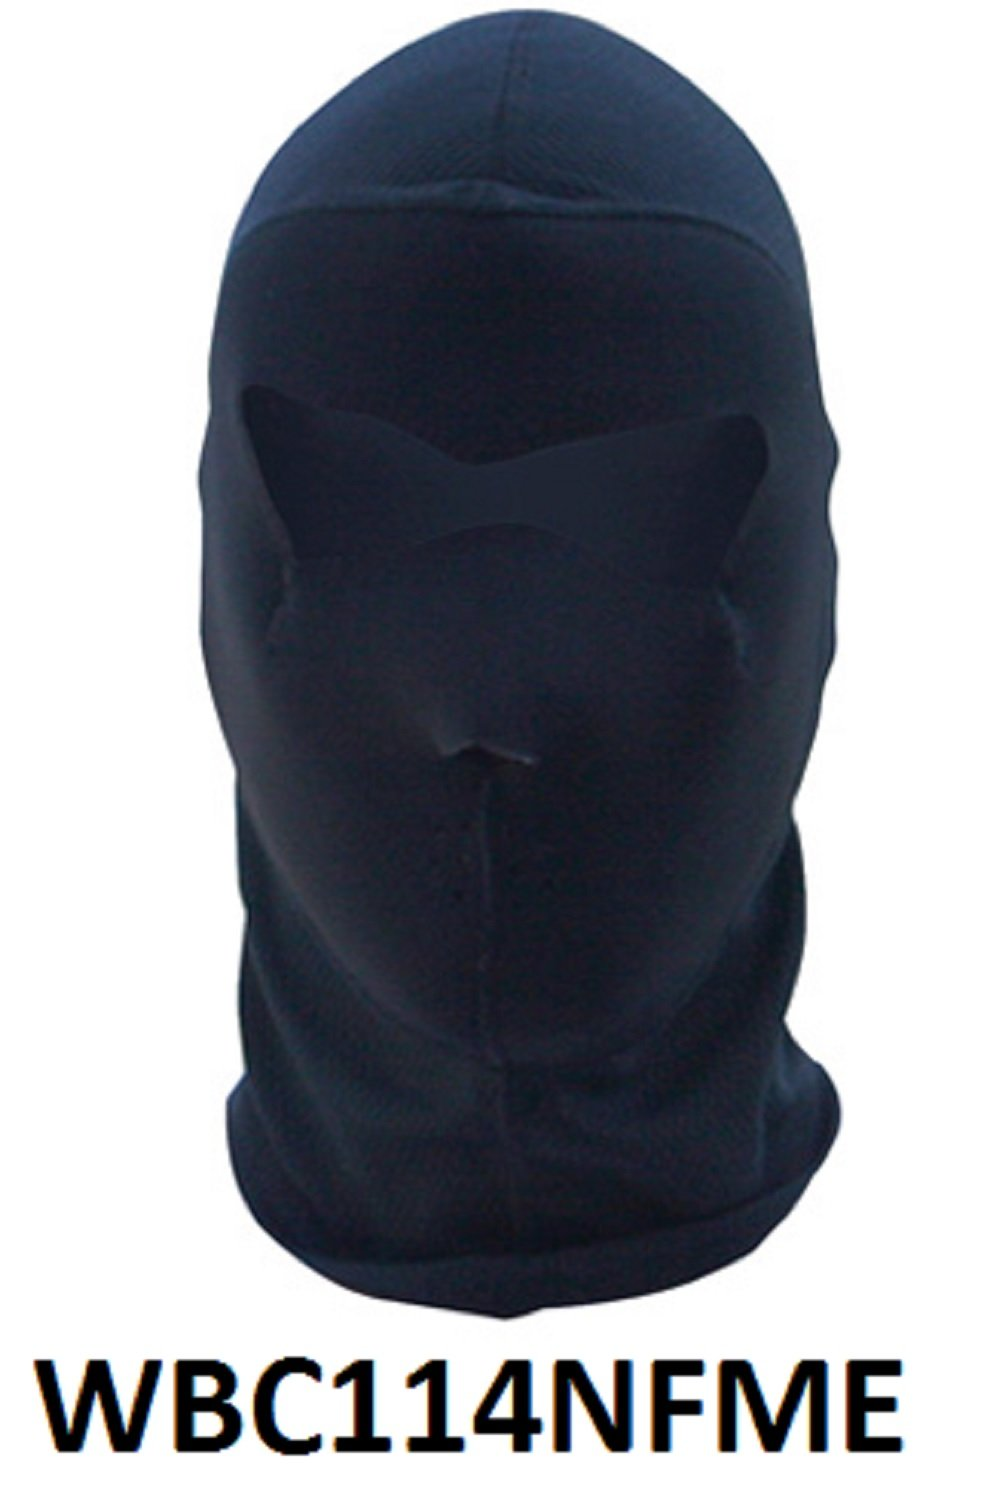 COOLMAX; BALACLAVA EXTREME, FULL MASK, SOLID BLACK, Manufacturer: BALBOA, Part Number: 830332-AD, VPN: WBC114NFME-AD, Condition: New by BALBOA